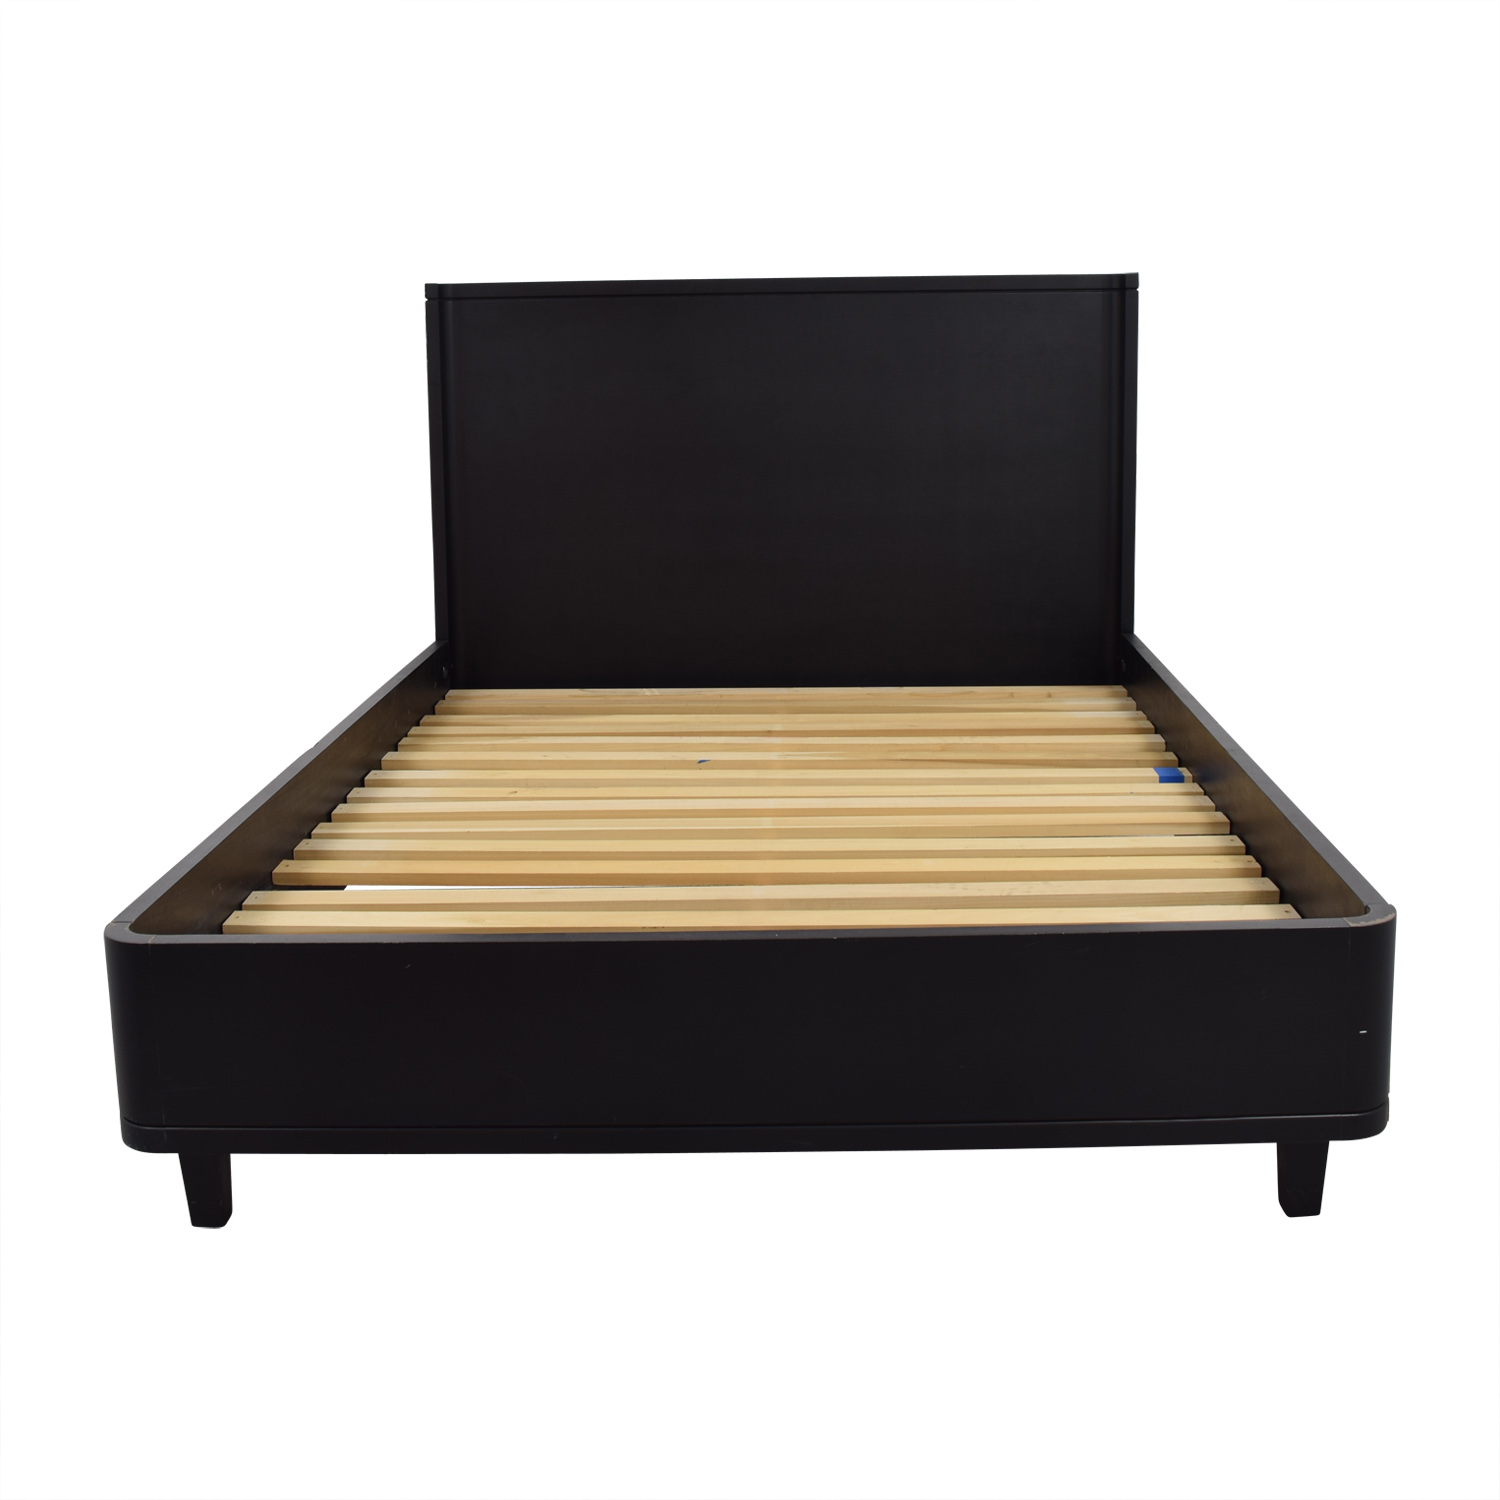 Crate & Barrel LaSalle Queen Bed Frame / Bed Frames